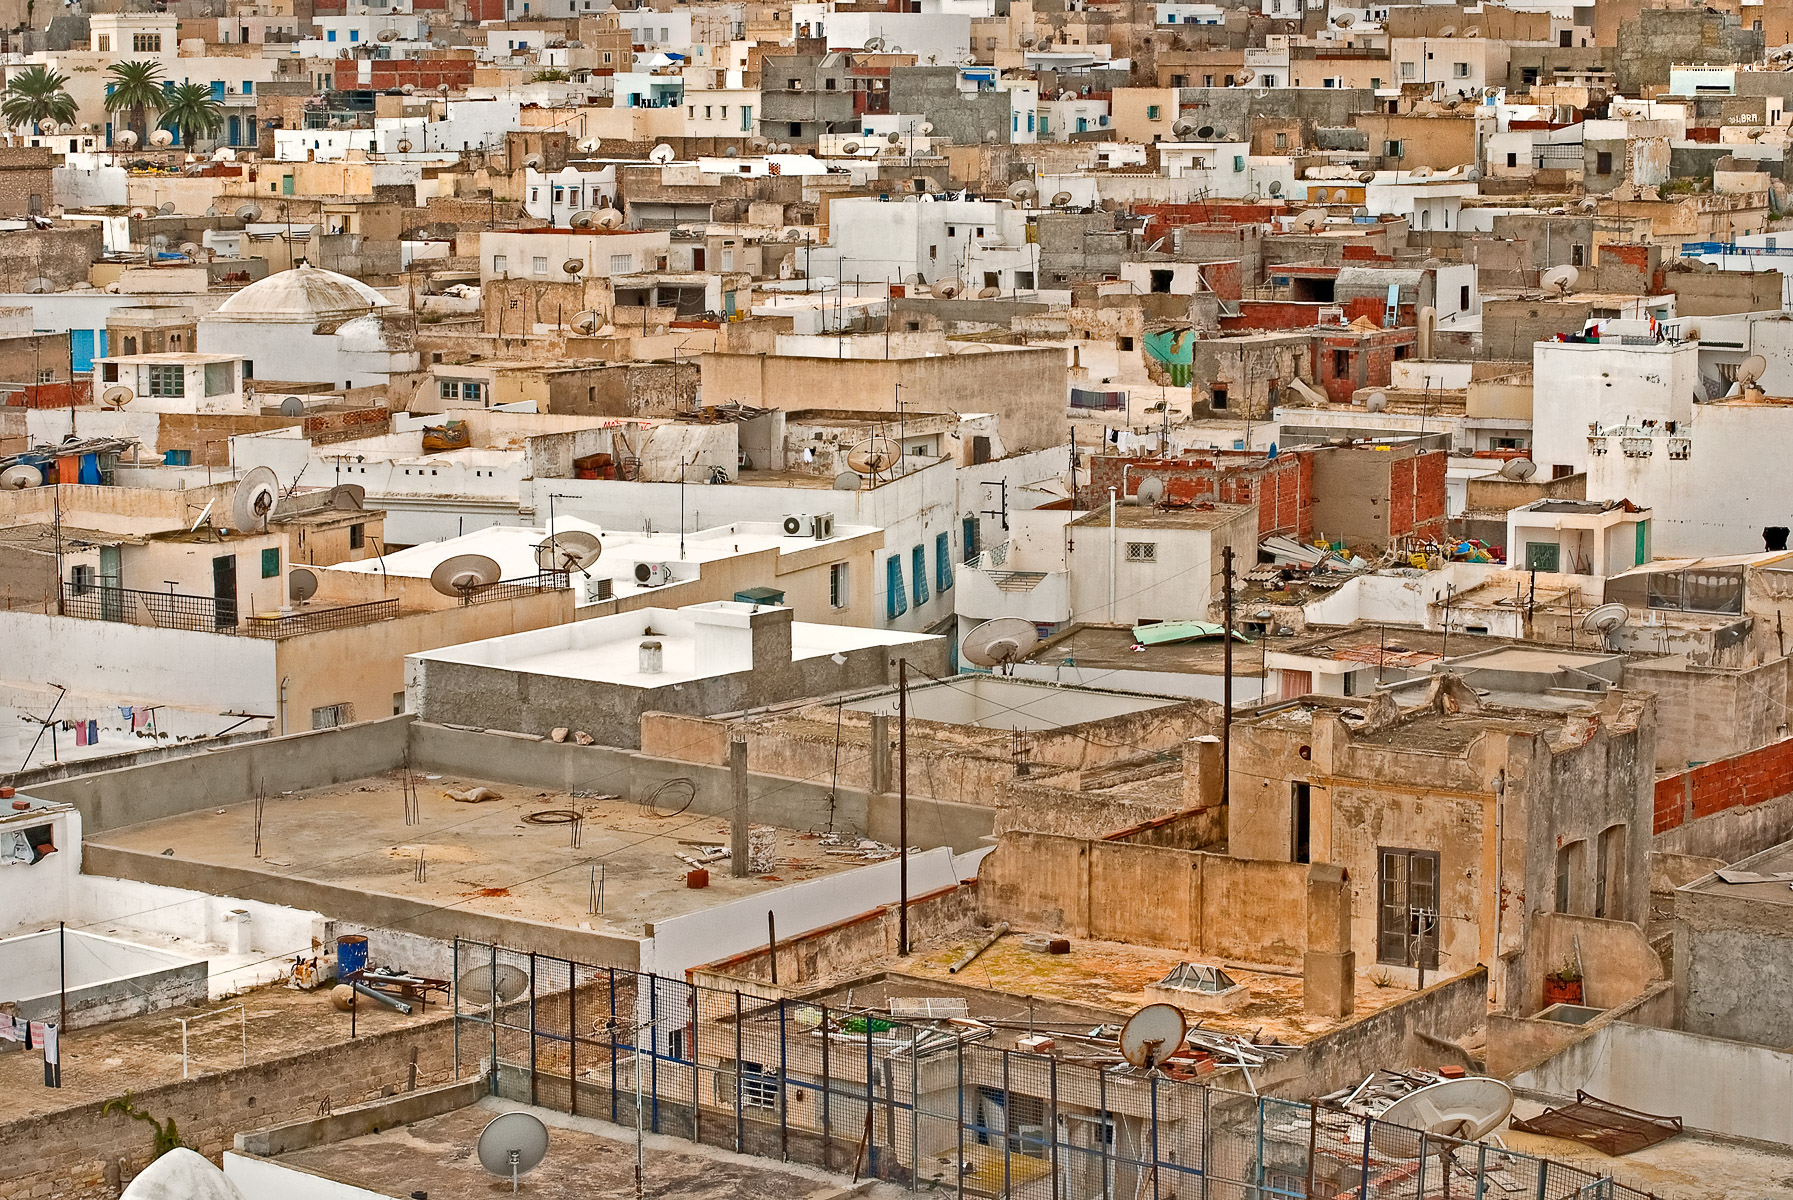 Roofs of Tunisia